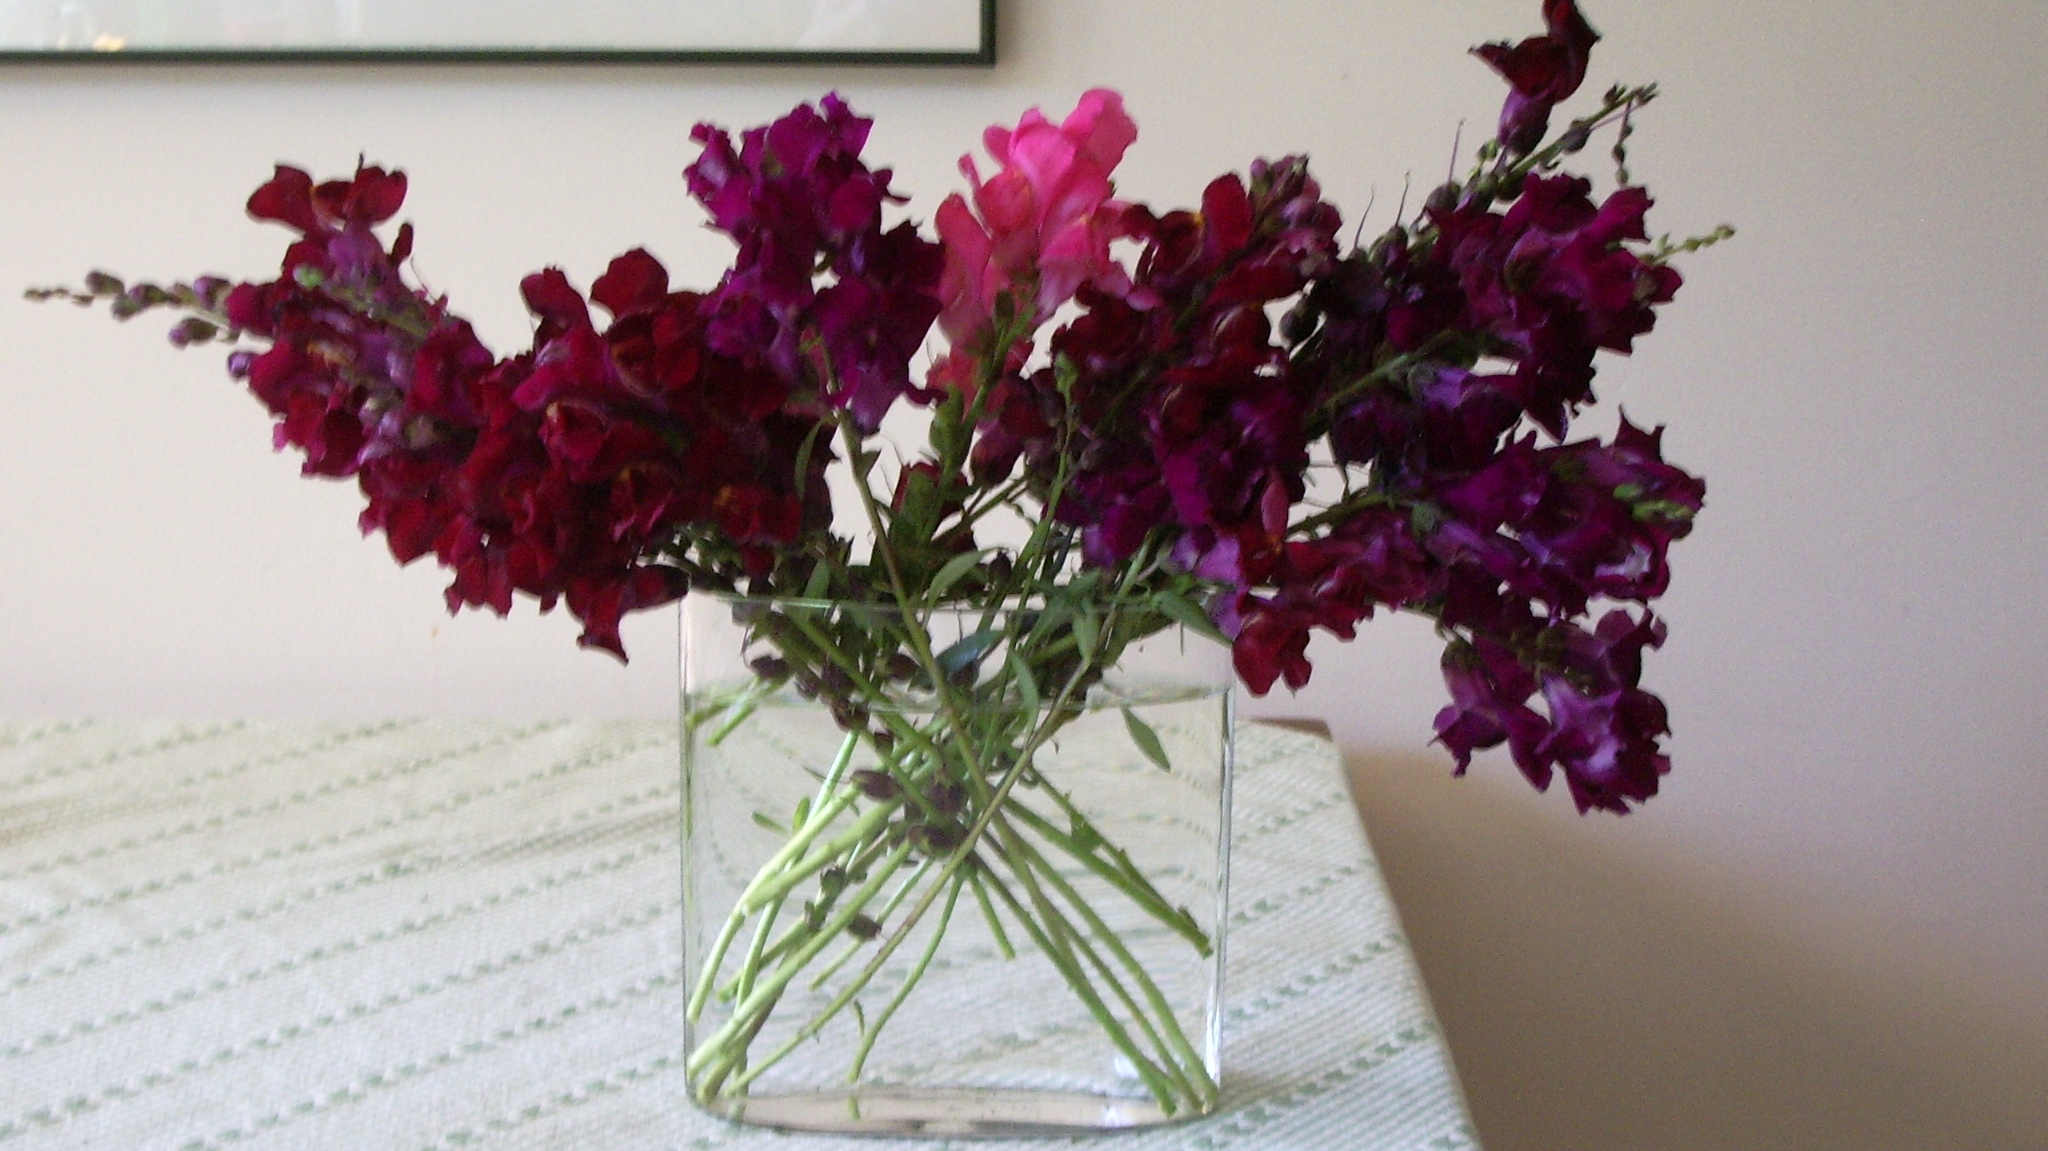 Maroon snapdragons arranged in a glass vase. Do snapdragons have a will to live? Photo by Barbara Newhall